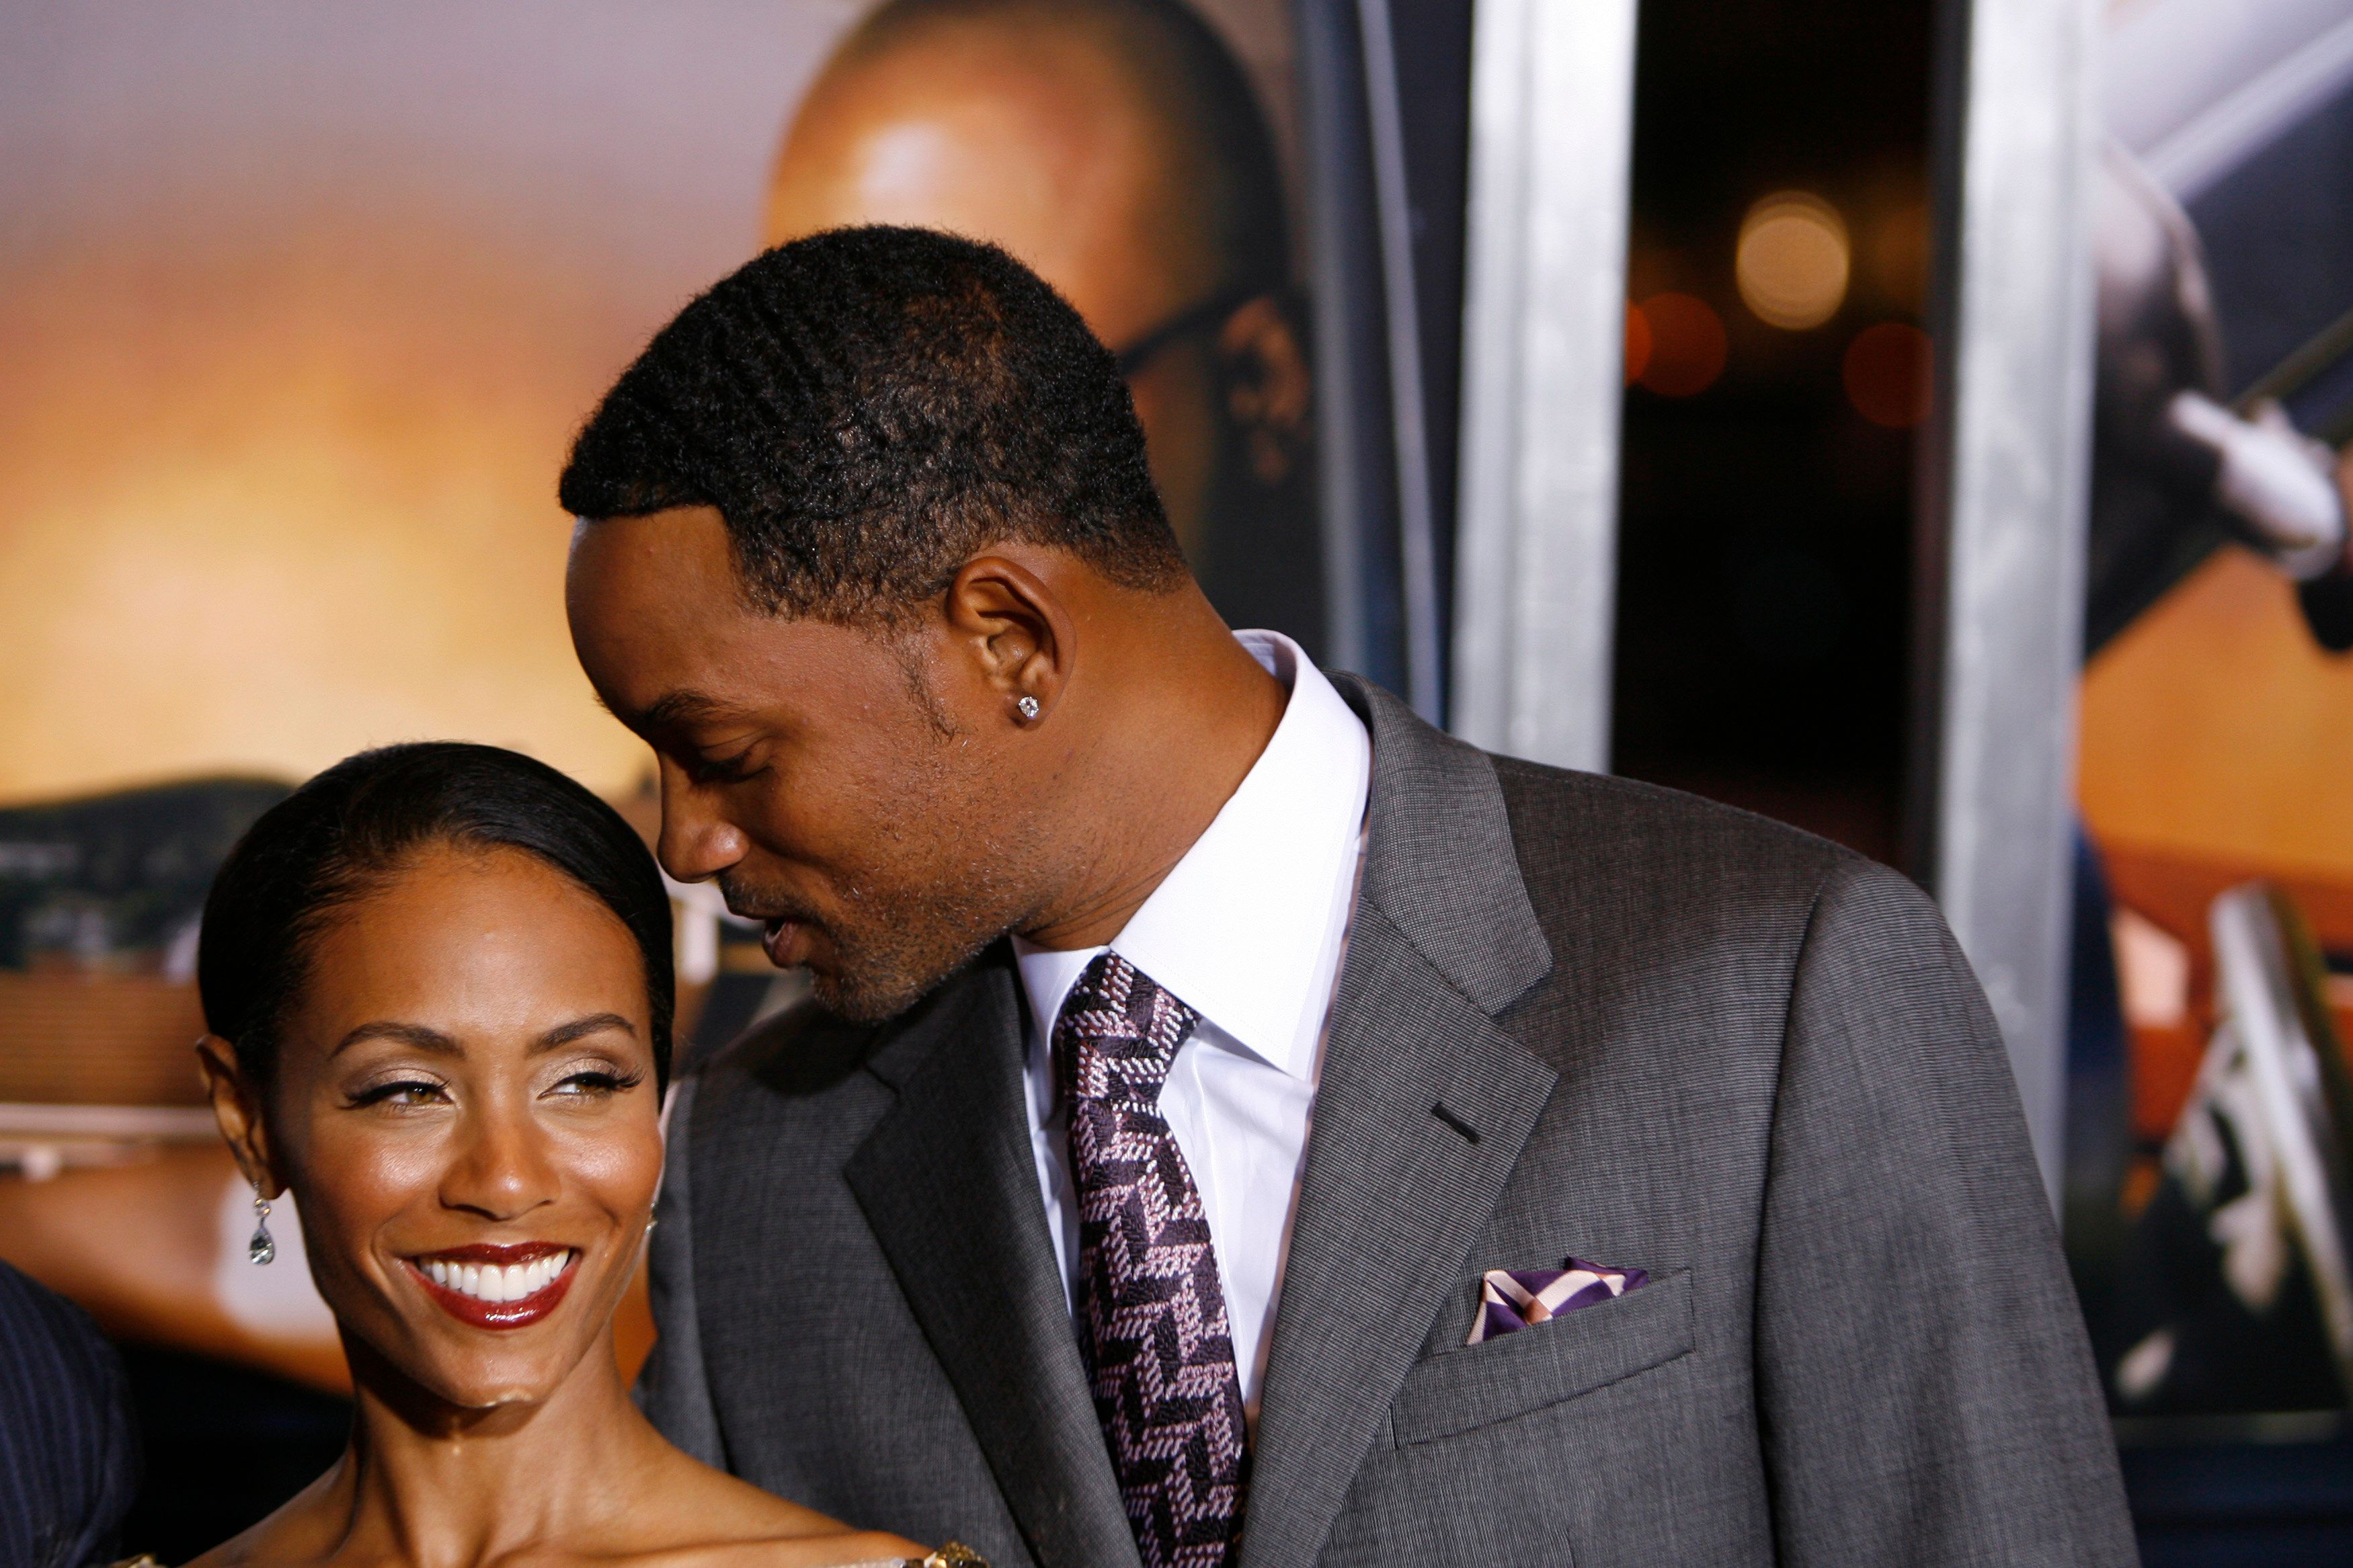 """Actors Will Smith (R) and Jada Pinkett Smith arrive to attend the premiere of the film """"Lakeview Terrace"""" in New York September 15, 2008.  REUTERS/Lucas Jackson  (UNITED STATES)"""